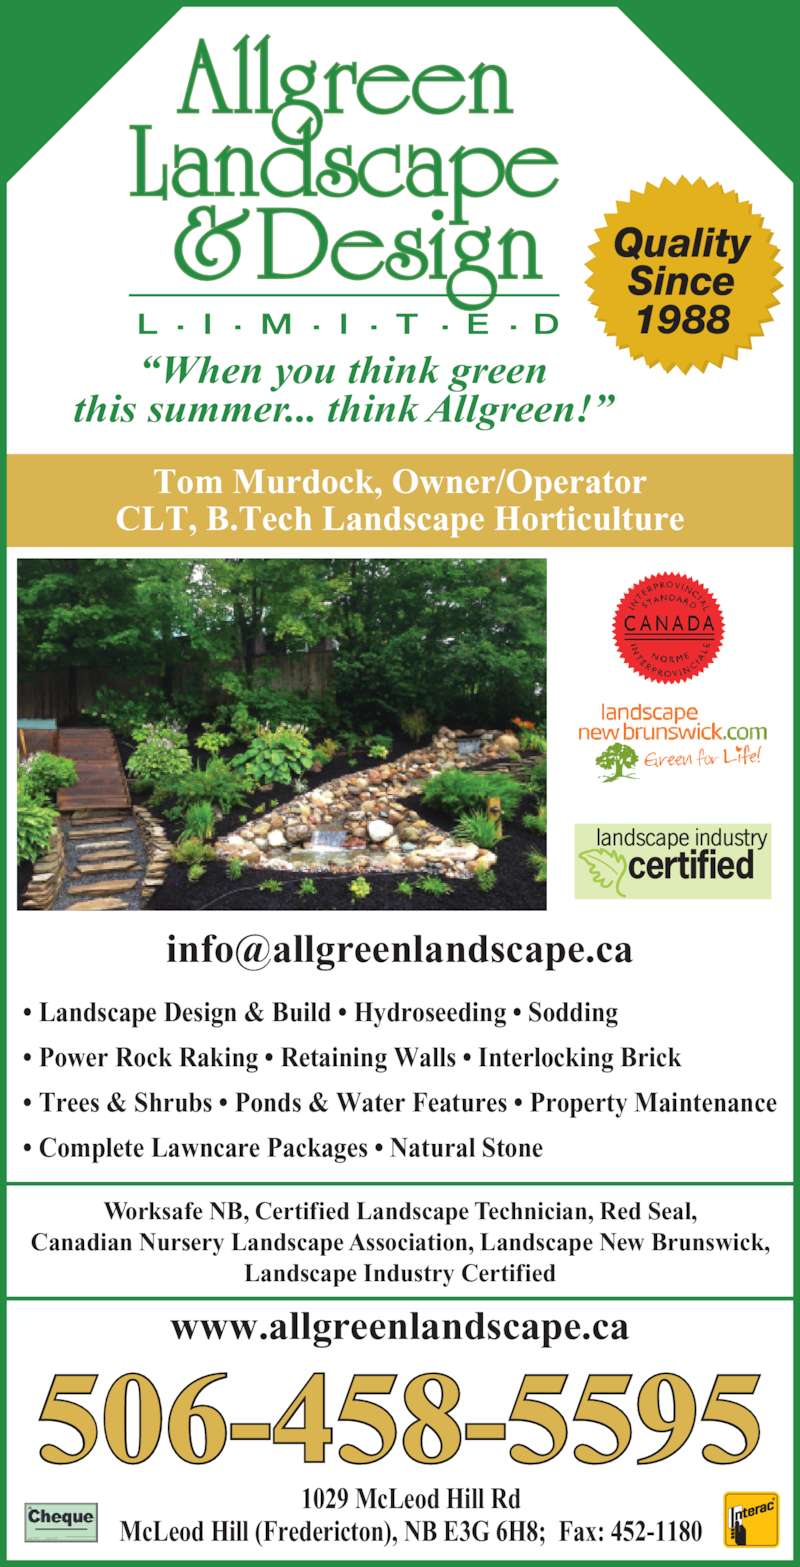 Allgreen Landscape & Design Ltd (506-458-5595) - Display Ad - Worksafe NB, Certified Landscape Technician, Red Seal, Canadian Nursery Landscape Association, Landscape New Brunswick, Landscape Industry Certified 506-458-5595 1029 McLeod Hill Rd McLeod Hill (Fredericton), NB E3G 6H8;  Fax: 452-1180 ? Landscape Design & Build ? Hydroseeding ? Sodding ? Power Rock Raking ? Retaining Walls ? Interlocking Brick ? Trees & Shrubs ? Ponds & Water Features ? Property Maintenance ? Complete Lawncare Packages ? Natural Stone Tom Murdock, Owner/Operator CLT, B.Tech Landscape Horticulture www.allgreenlandscape.ca ?When you think green this summer... think Allgreen!? Quality Since 1988